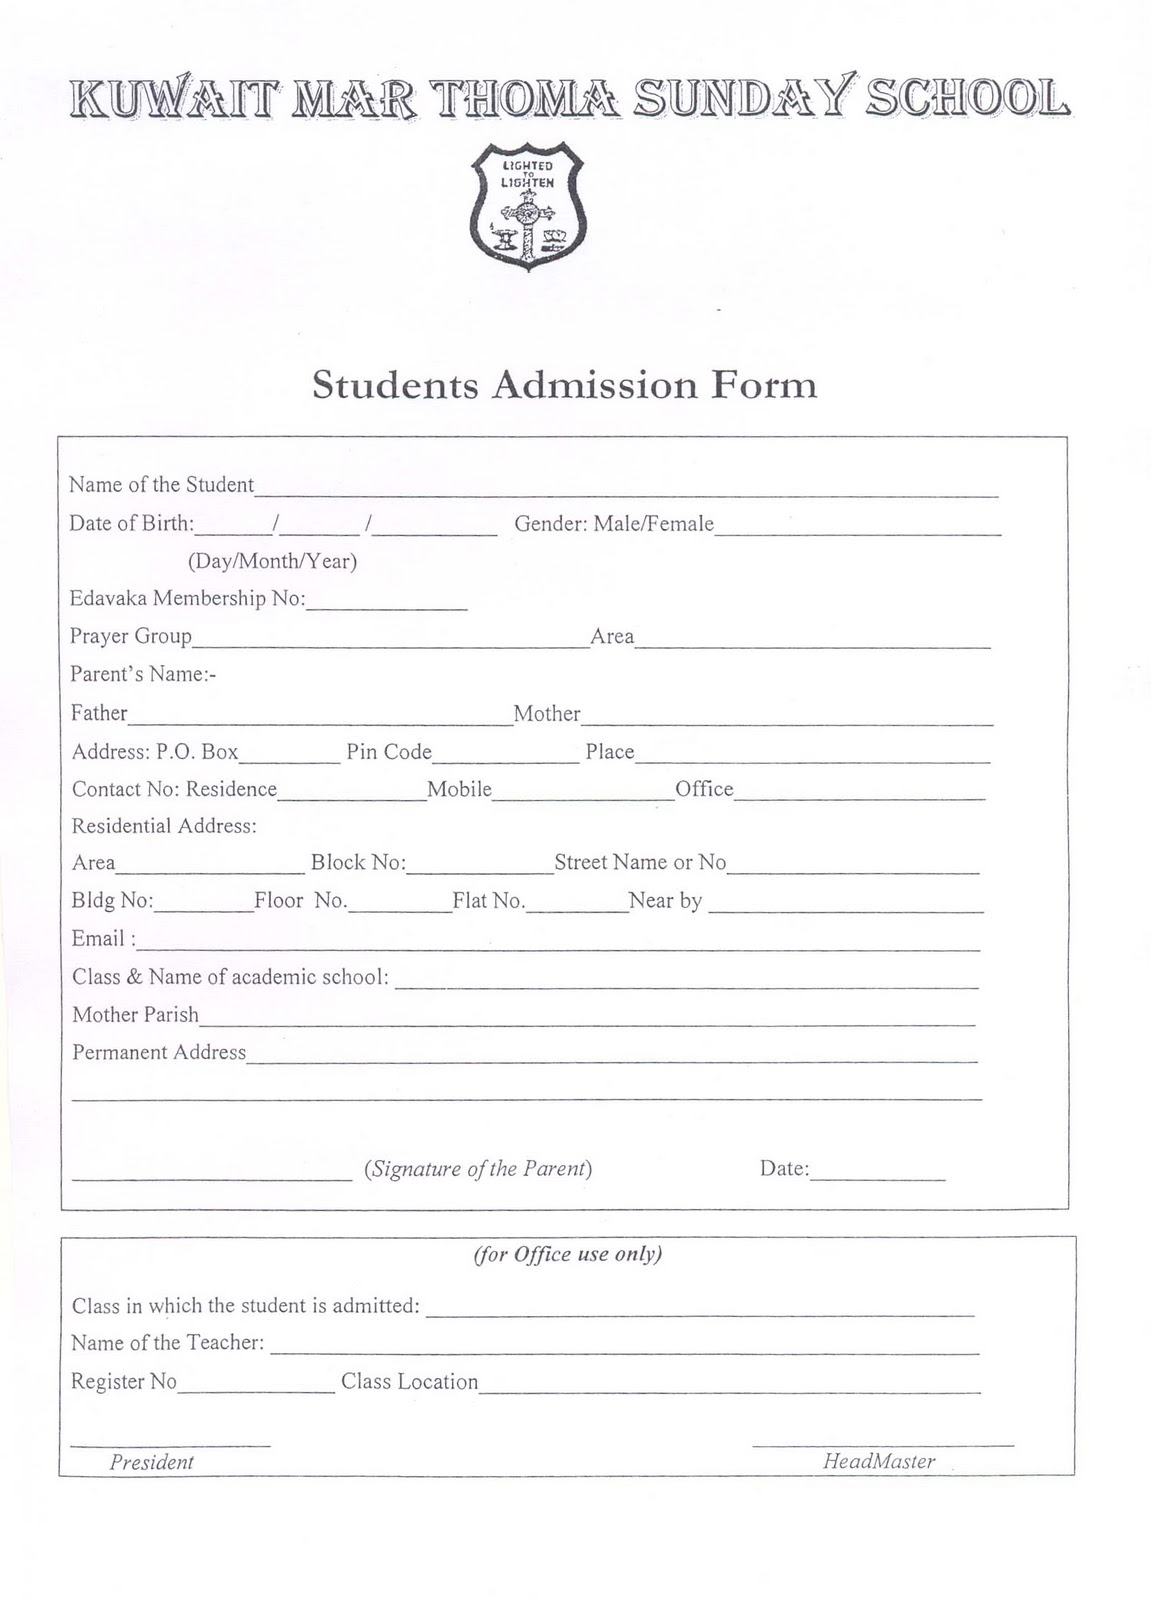 Sunday School Admission Form. Word Format:  Http://www.4shared.com/file/UH8E7RdV/student Appl__1_.html  Admission Form Format For School